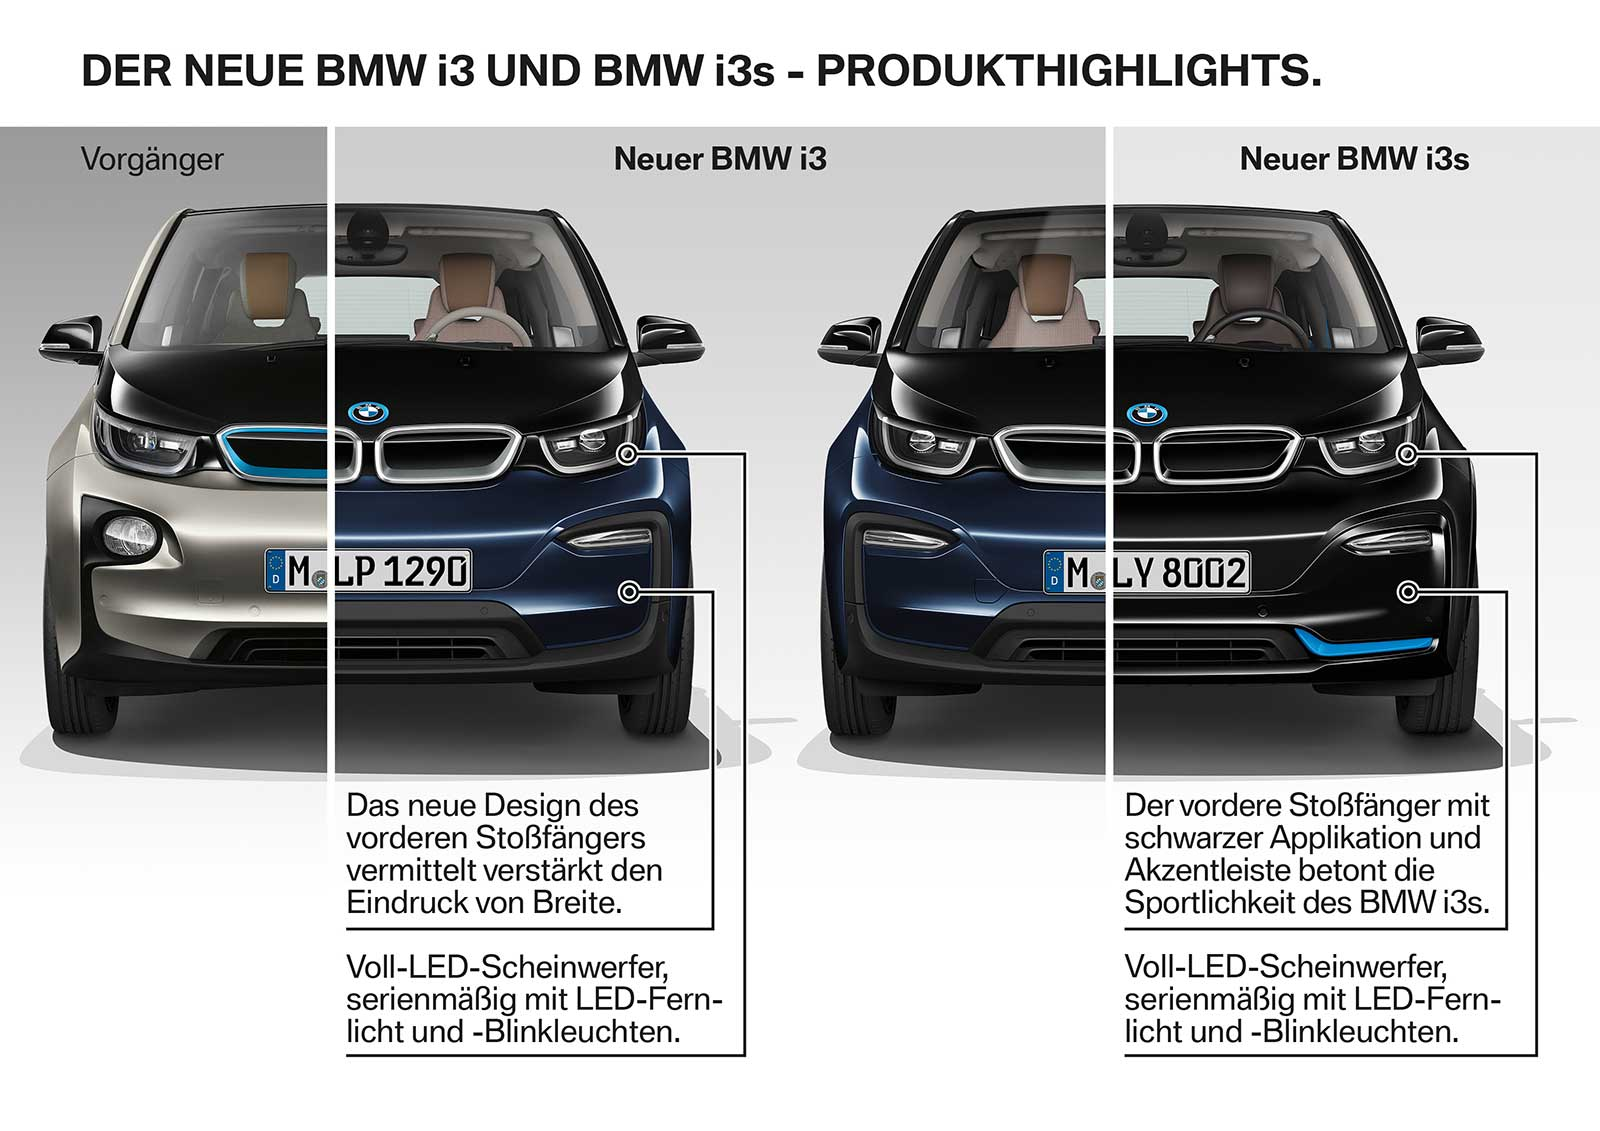 Comparison: 2017 BMW i3 vs 2018 BMW i3 & i3s - BimmerFile